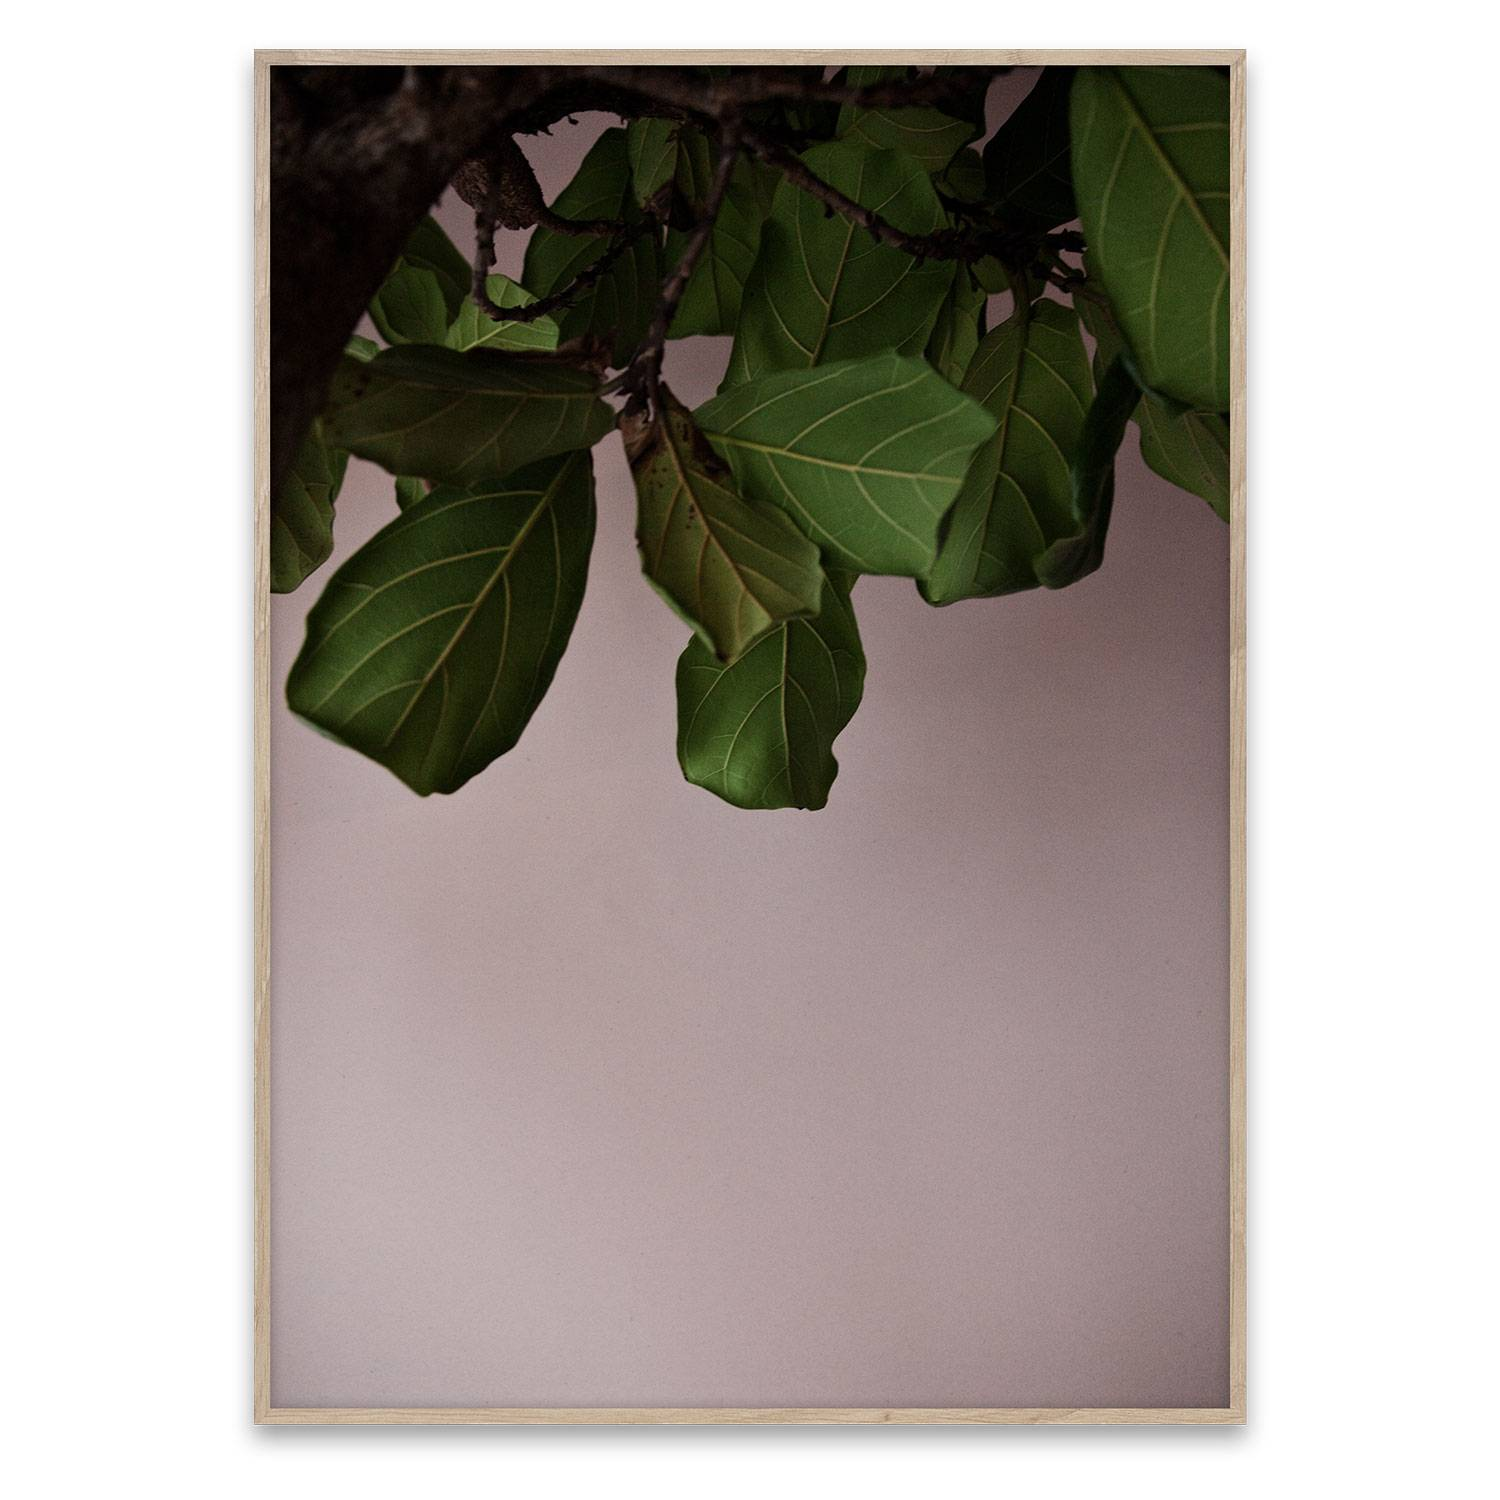 Paper Collective Green Leaves Poster 40x30